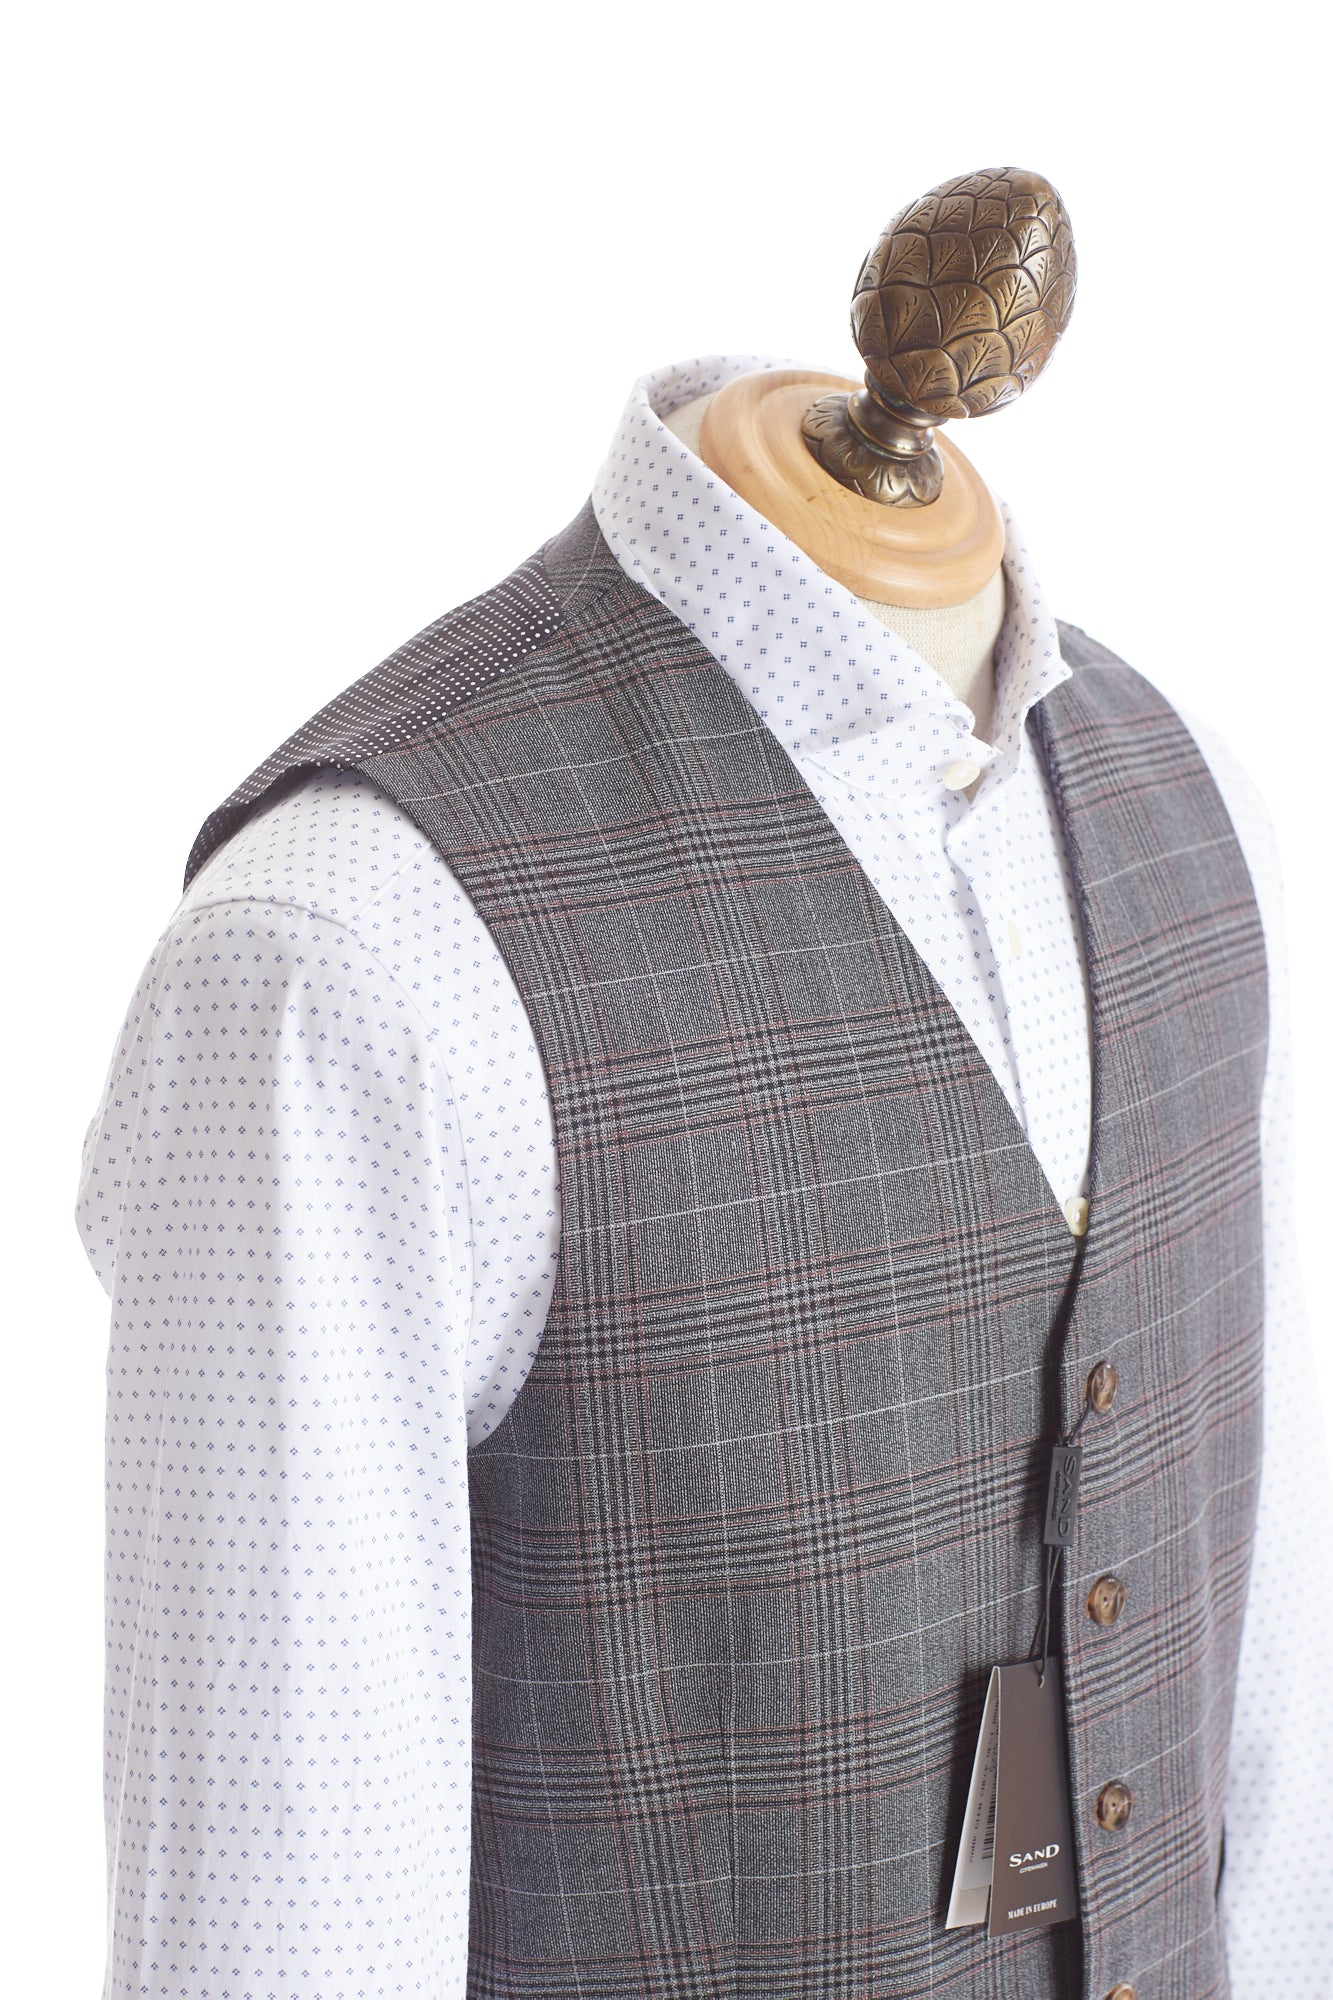 SAND Grey Glencheck Wool Vest Side